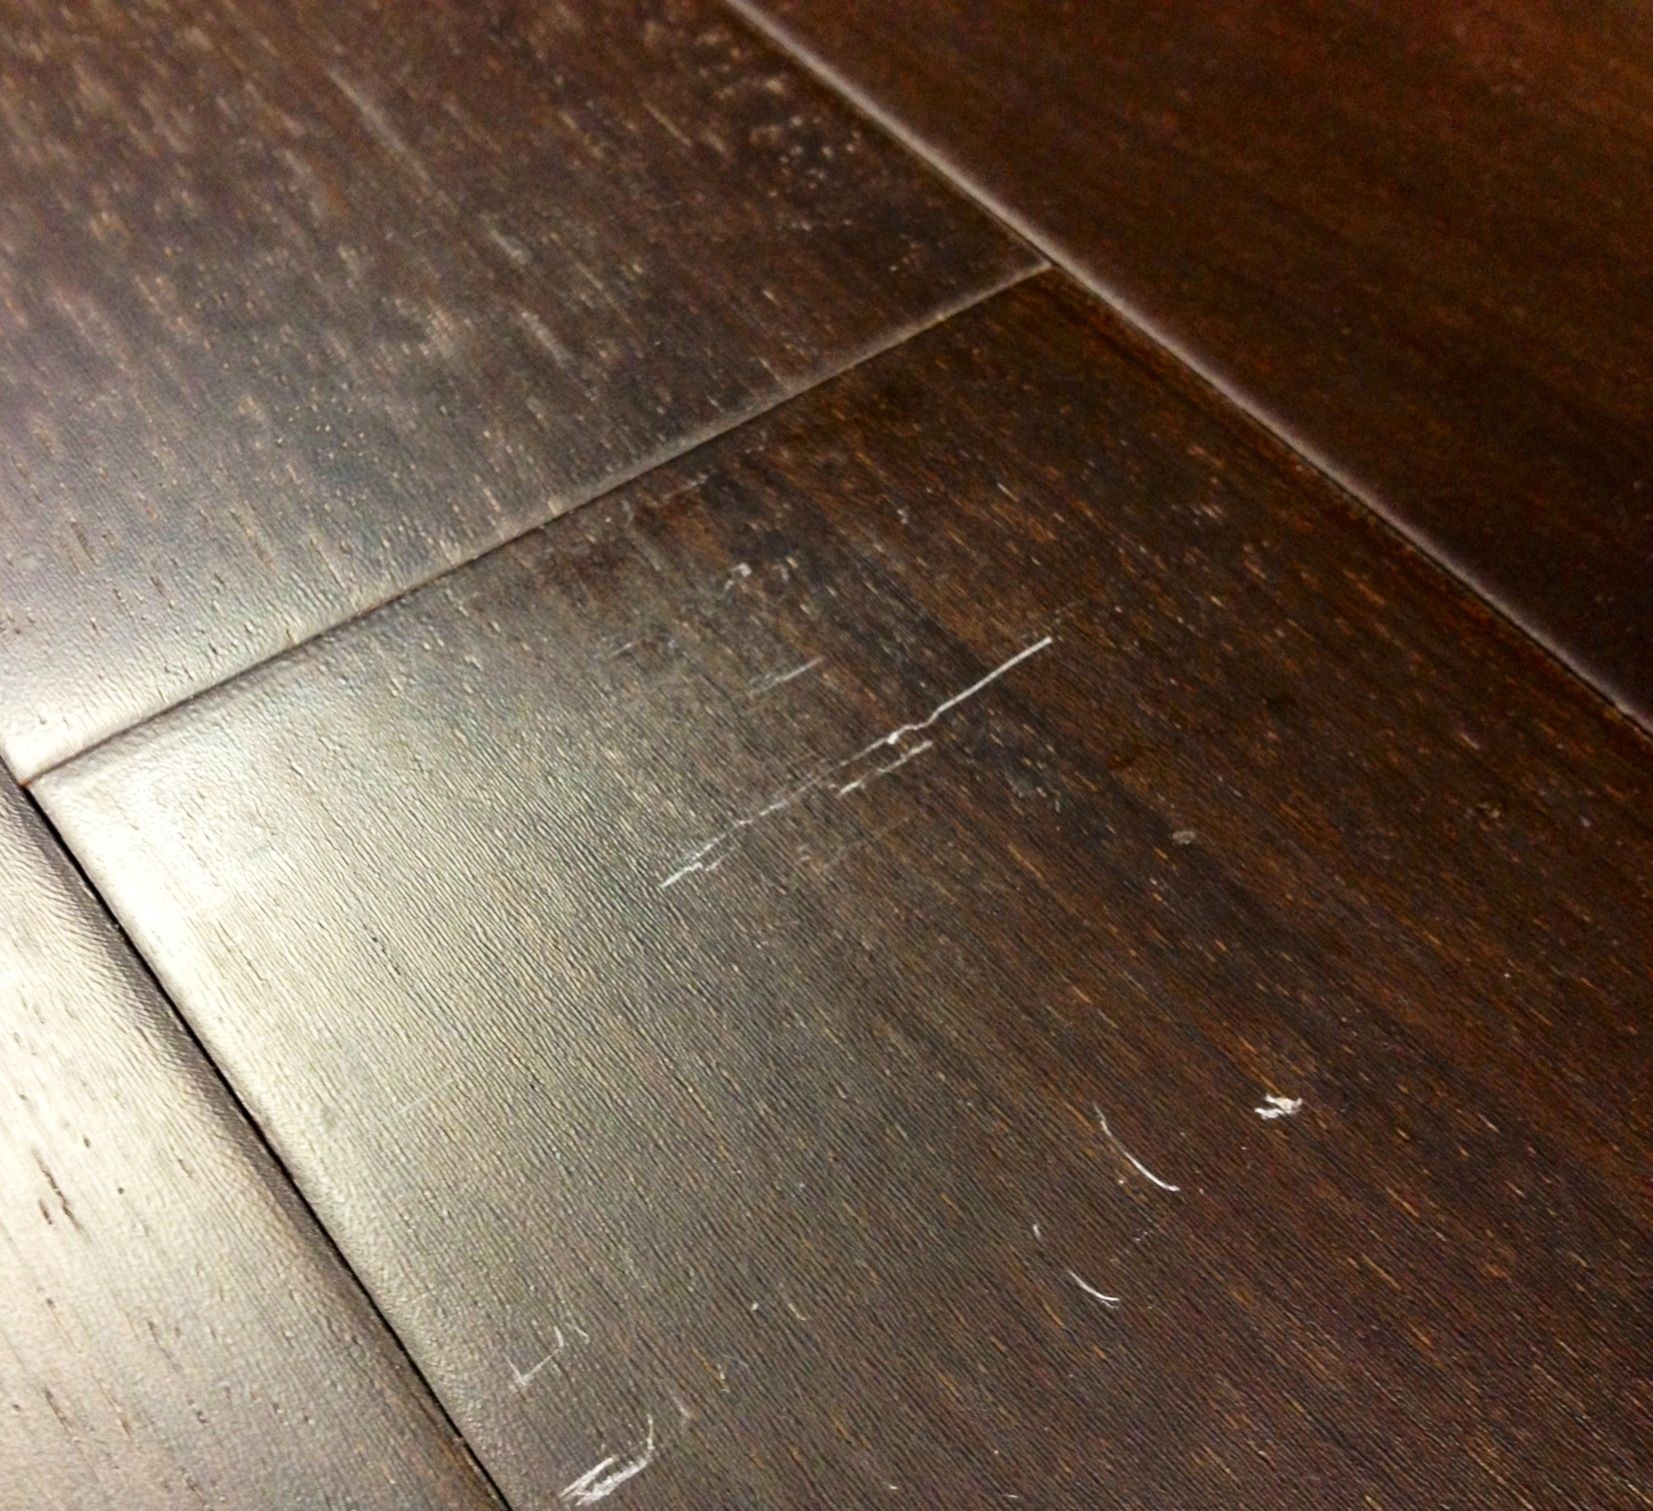 Fixing Surface Scratches On Wood Floors